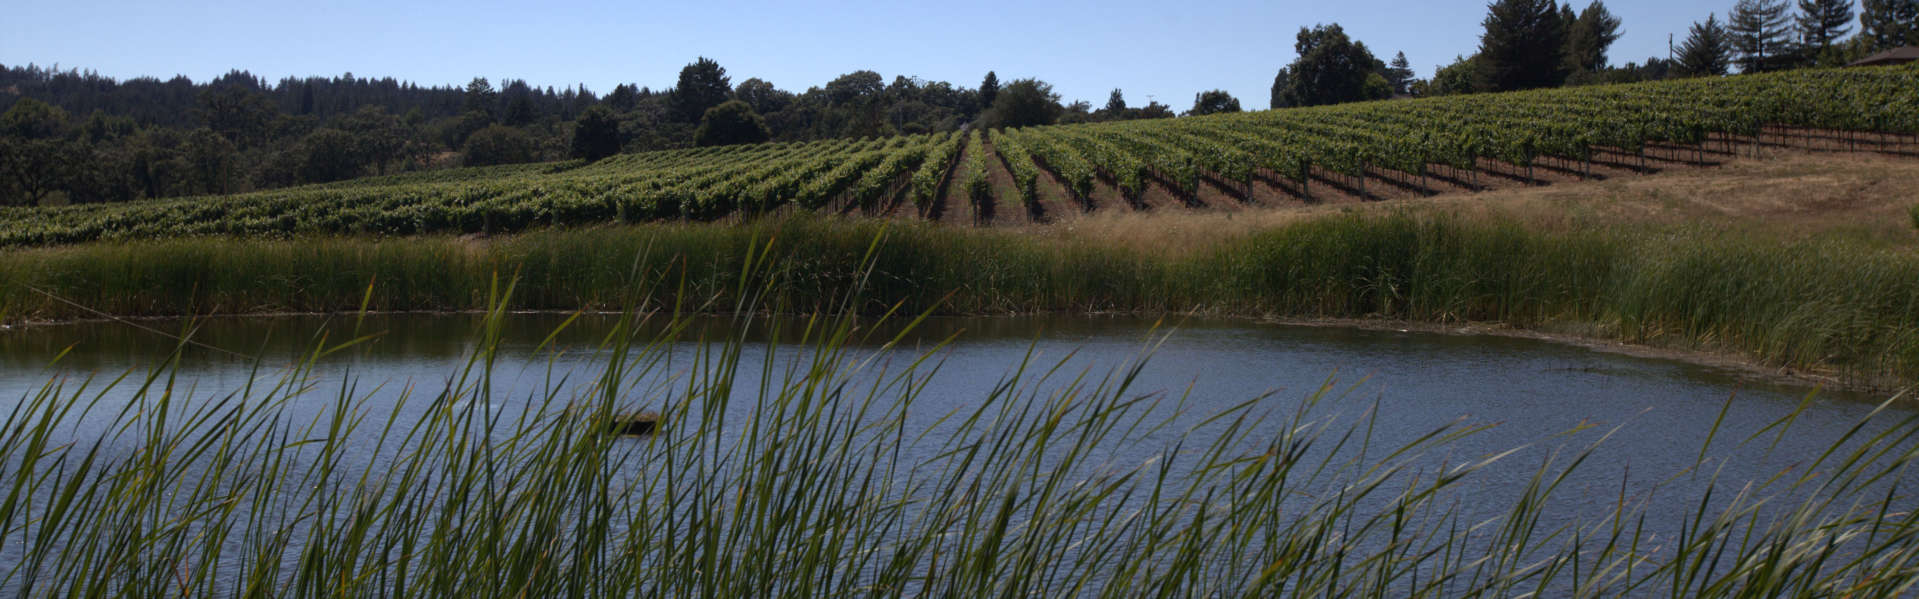 View of Keefer Ranch Vineyard and pond in Green Valley, California